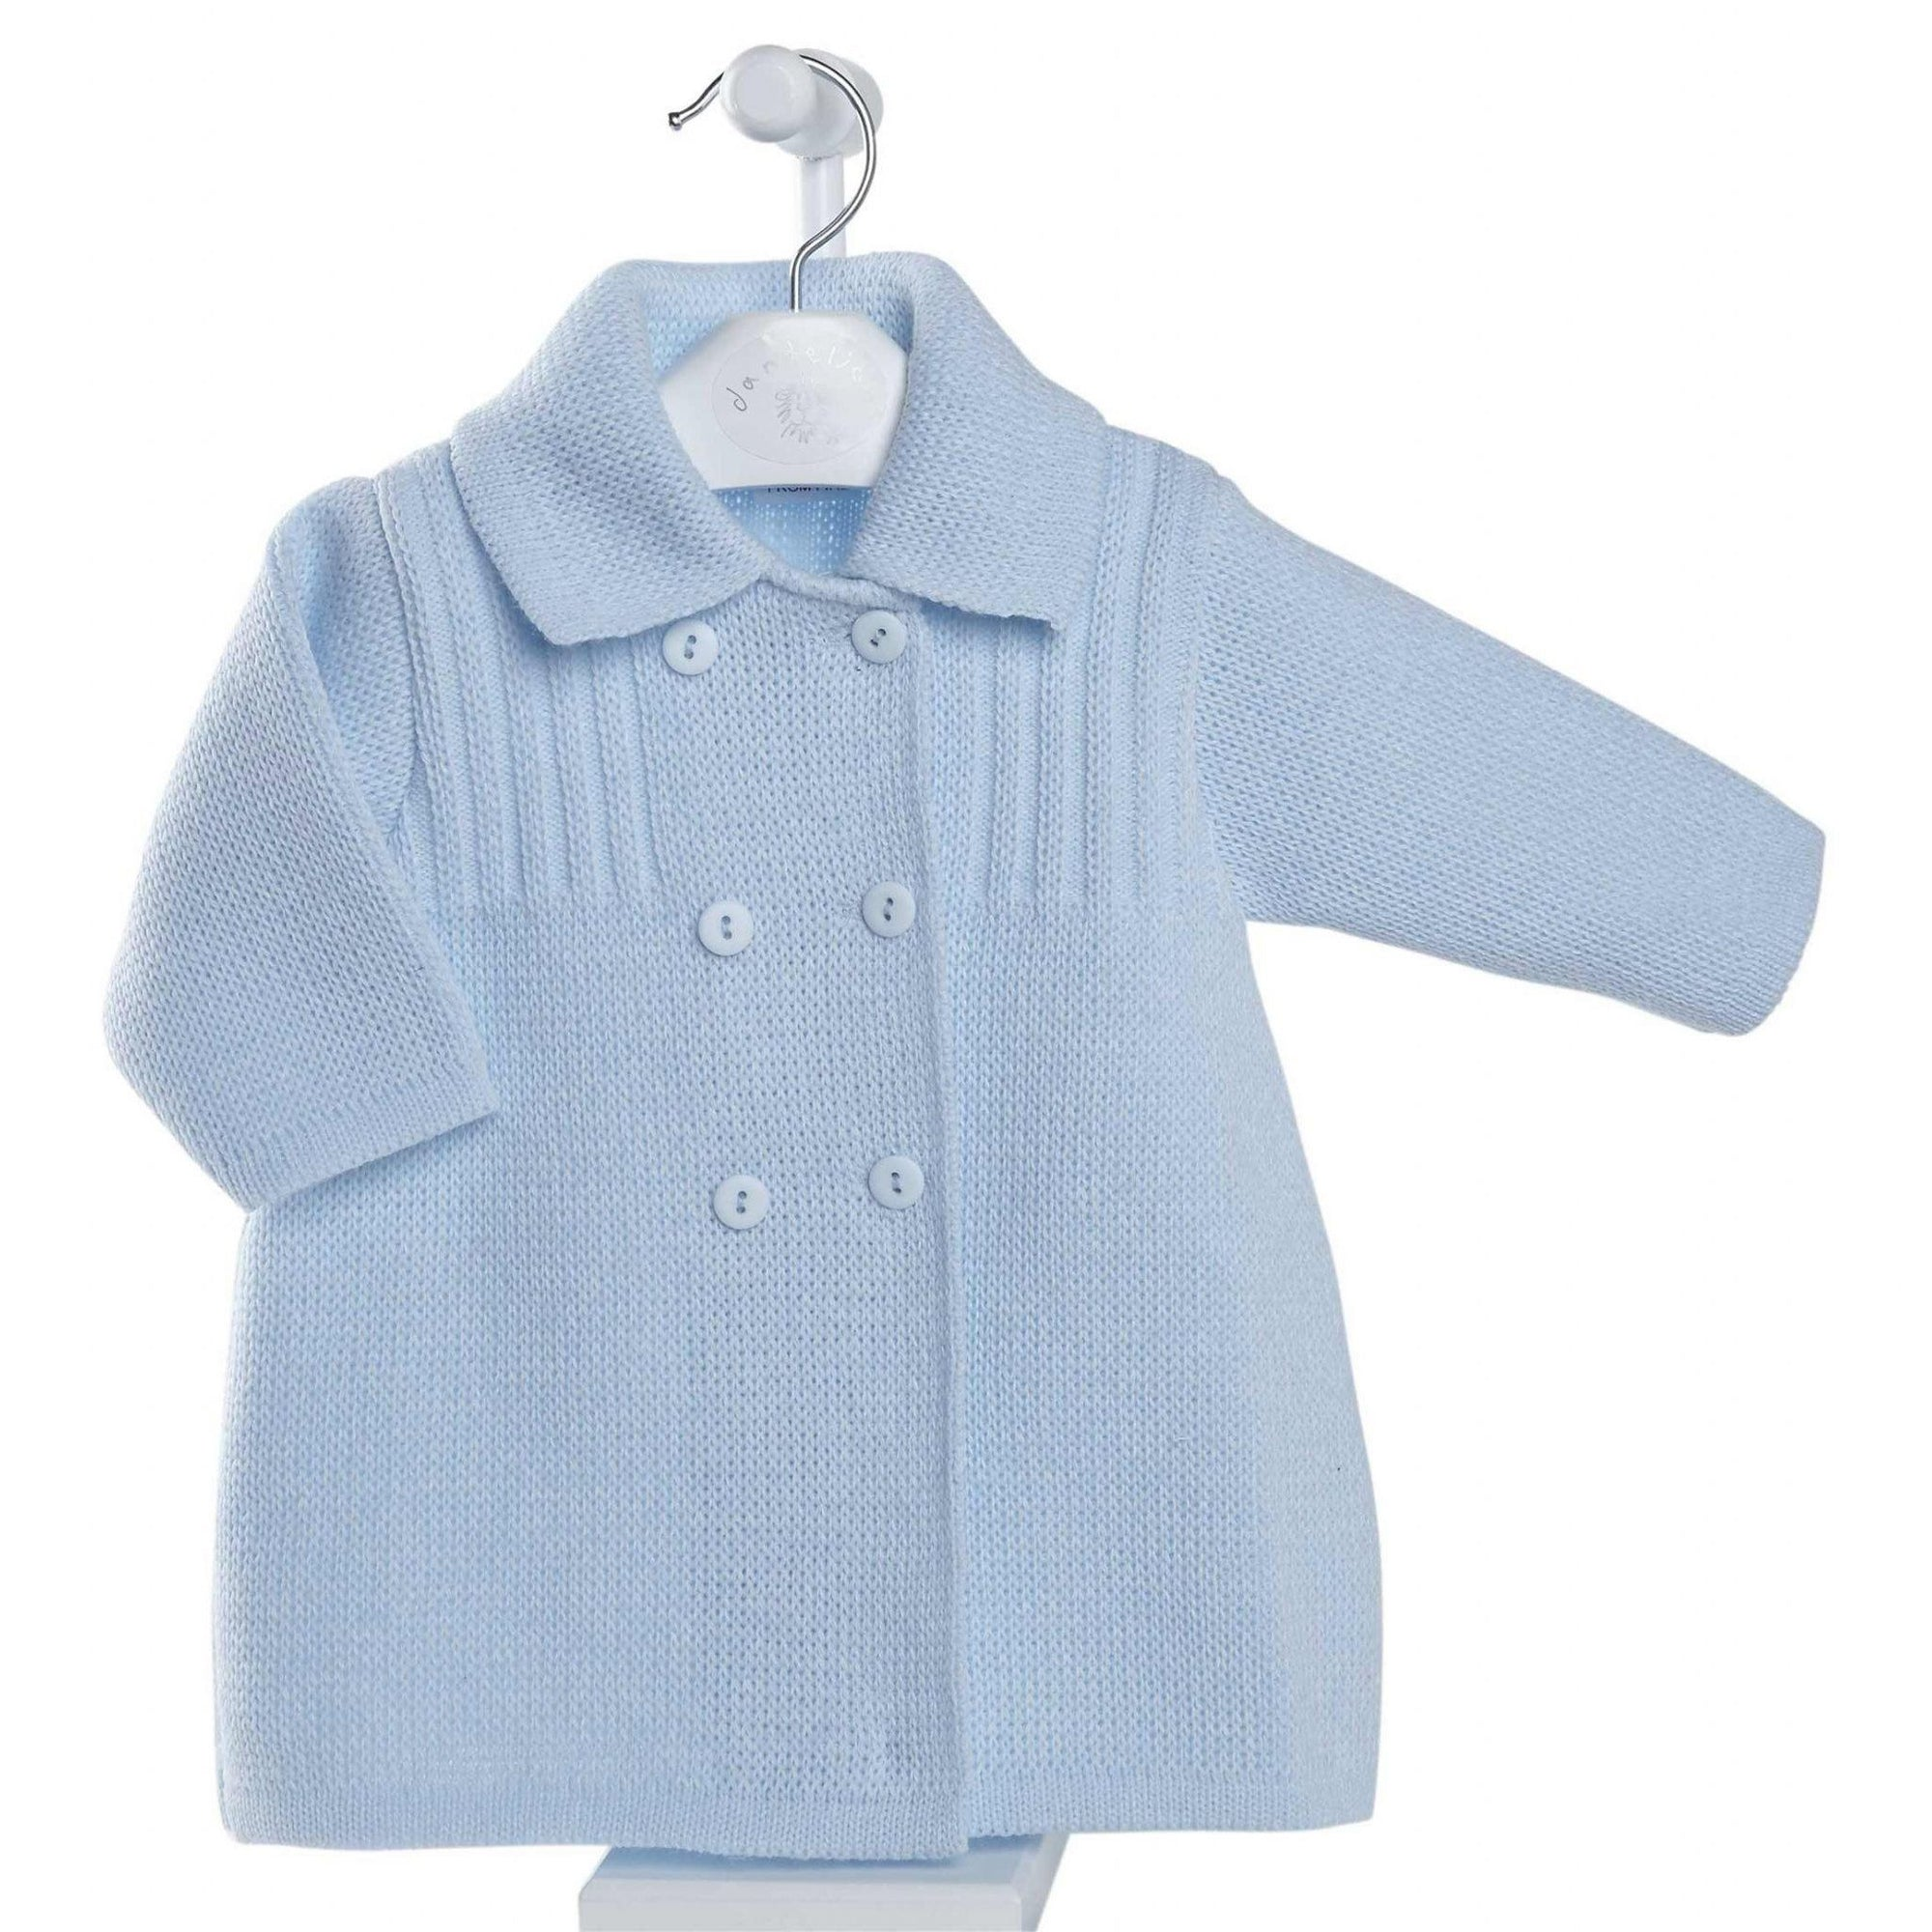 Dandelion Blue Knitted Jacket | Millie and John